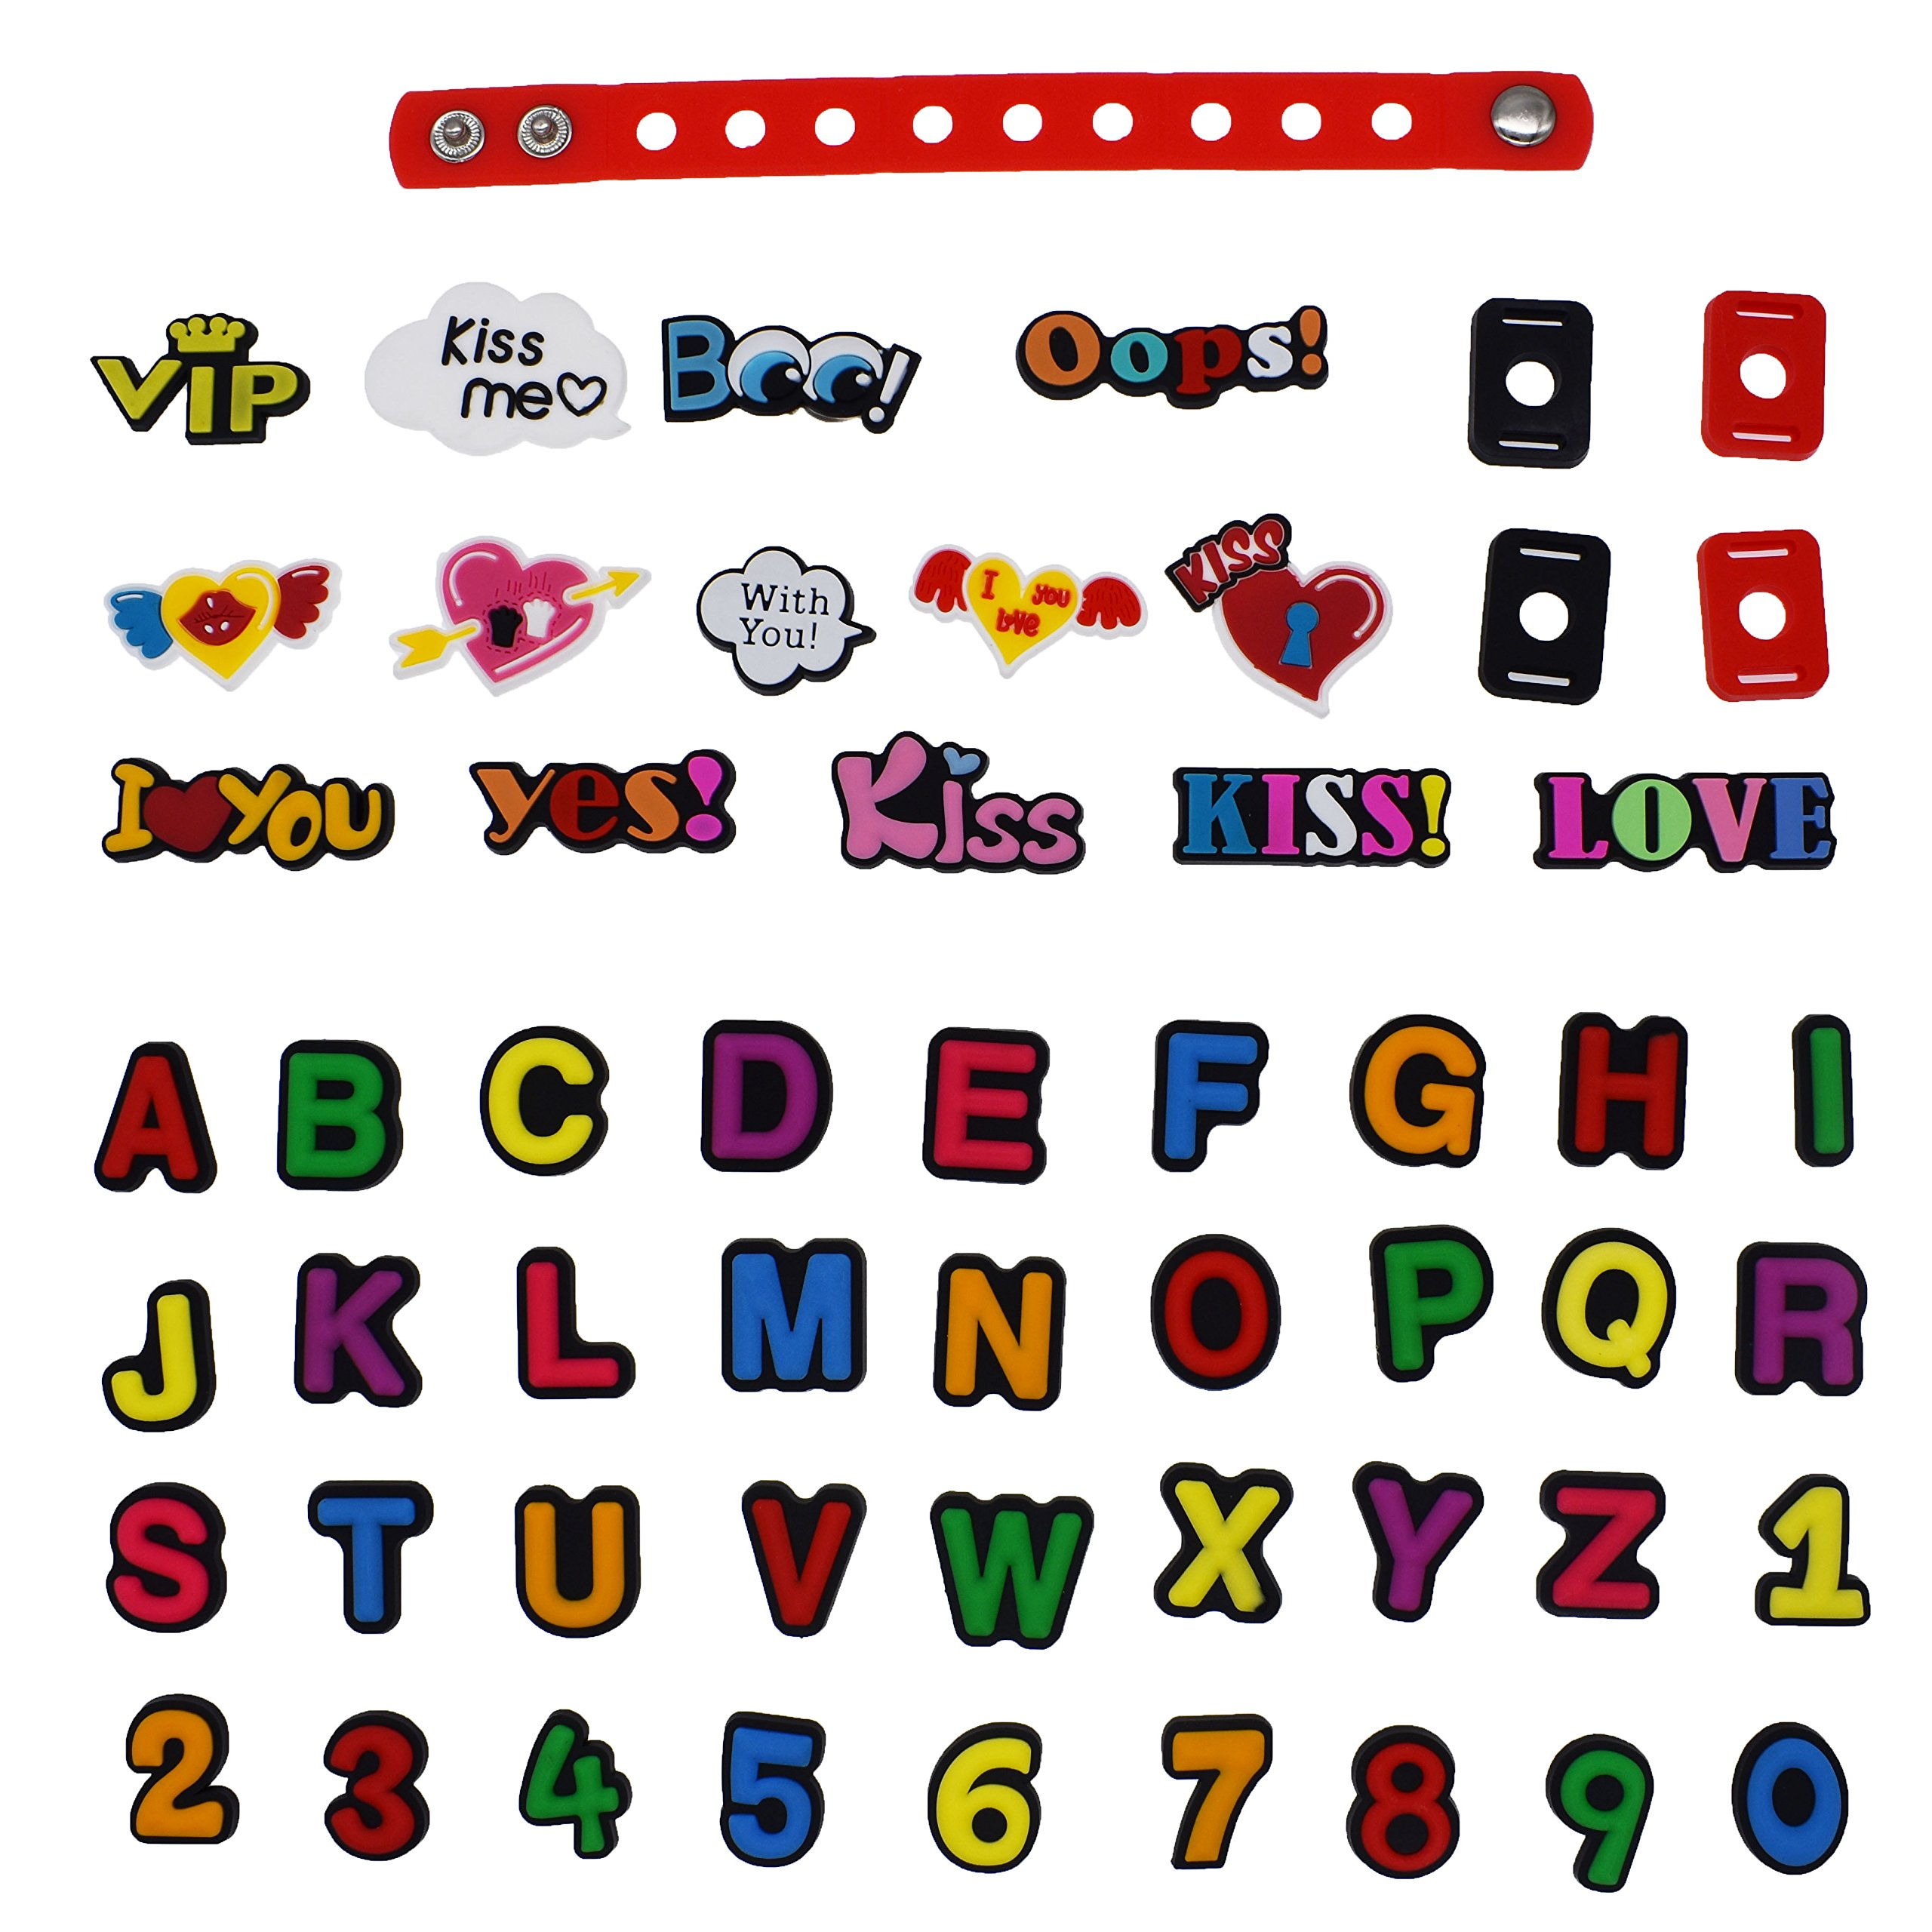 XHAOYEAHX Pack of 50 Shoe Charms of Letters Alphabet Numbers Love Kiss Words Fits for Croc Shoes & Wristband Bracelet + 4Pcs Shoe Lace Adapter + 1Pcs 7.08in Silicone Bracelet Bands